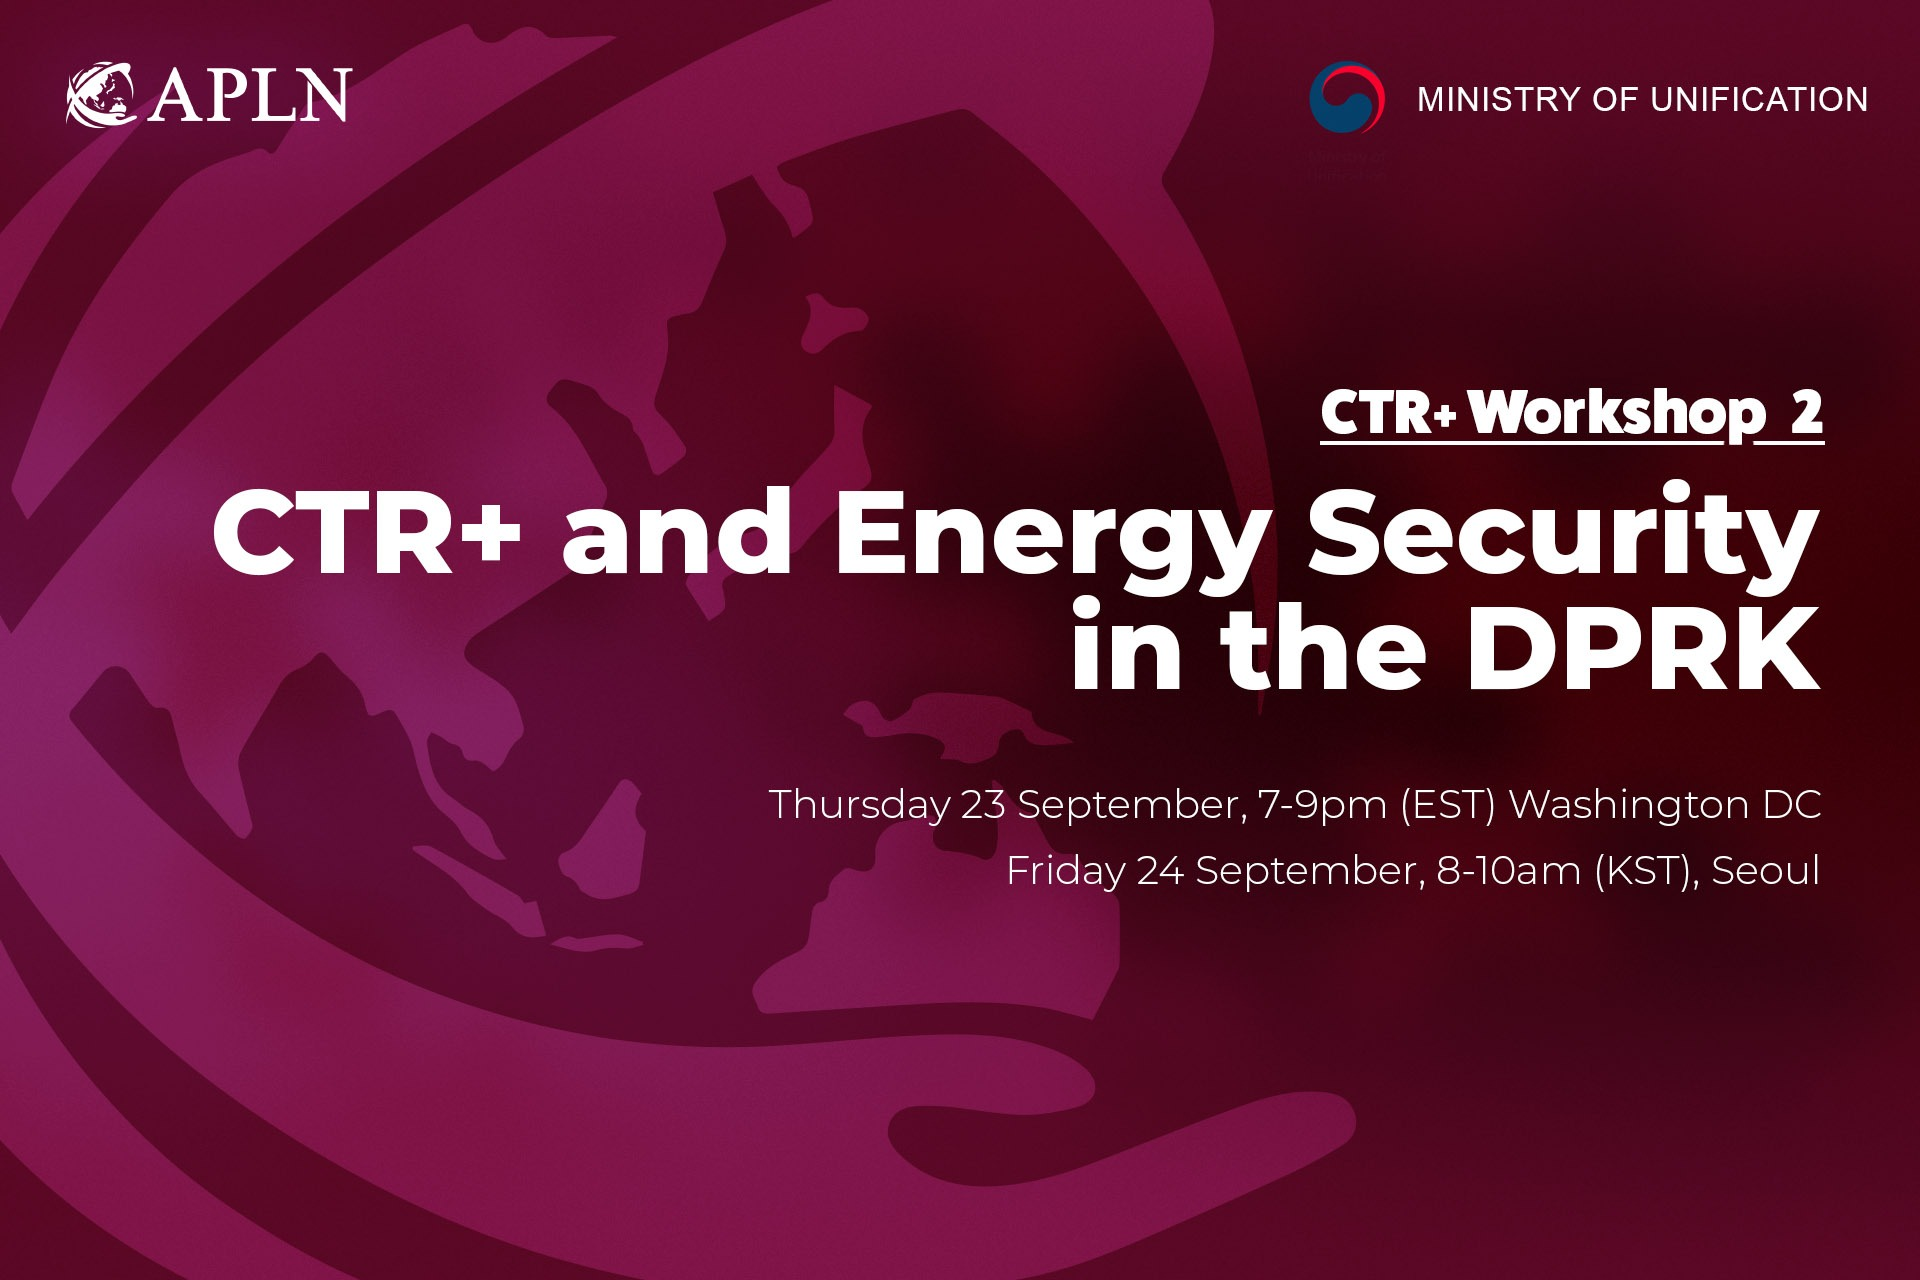 [Webinar 2] CTR+ and Energy Security in the DPRK